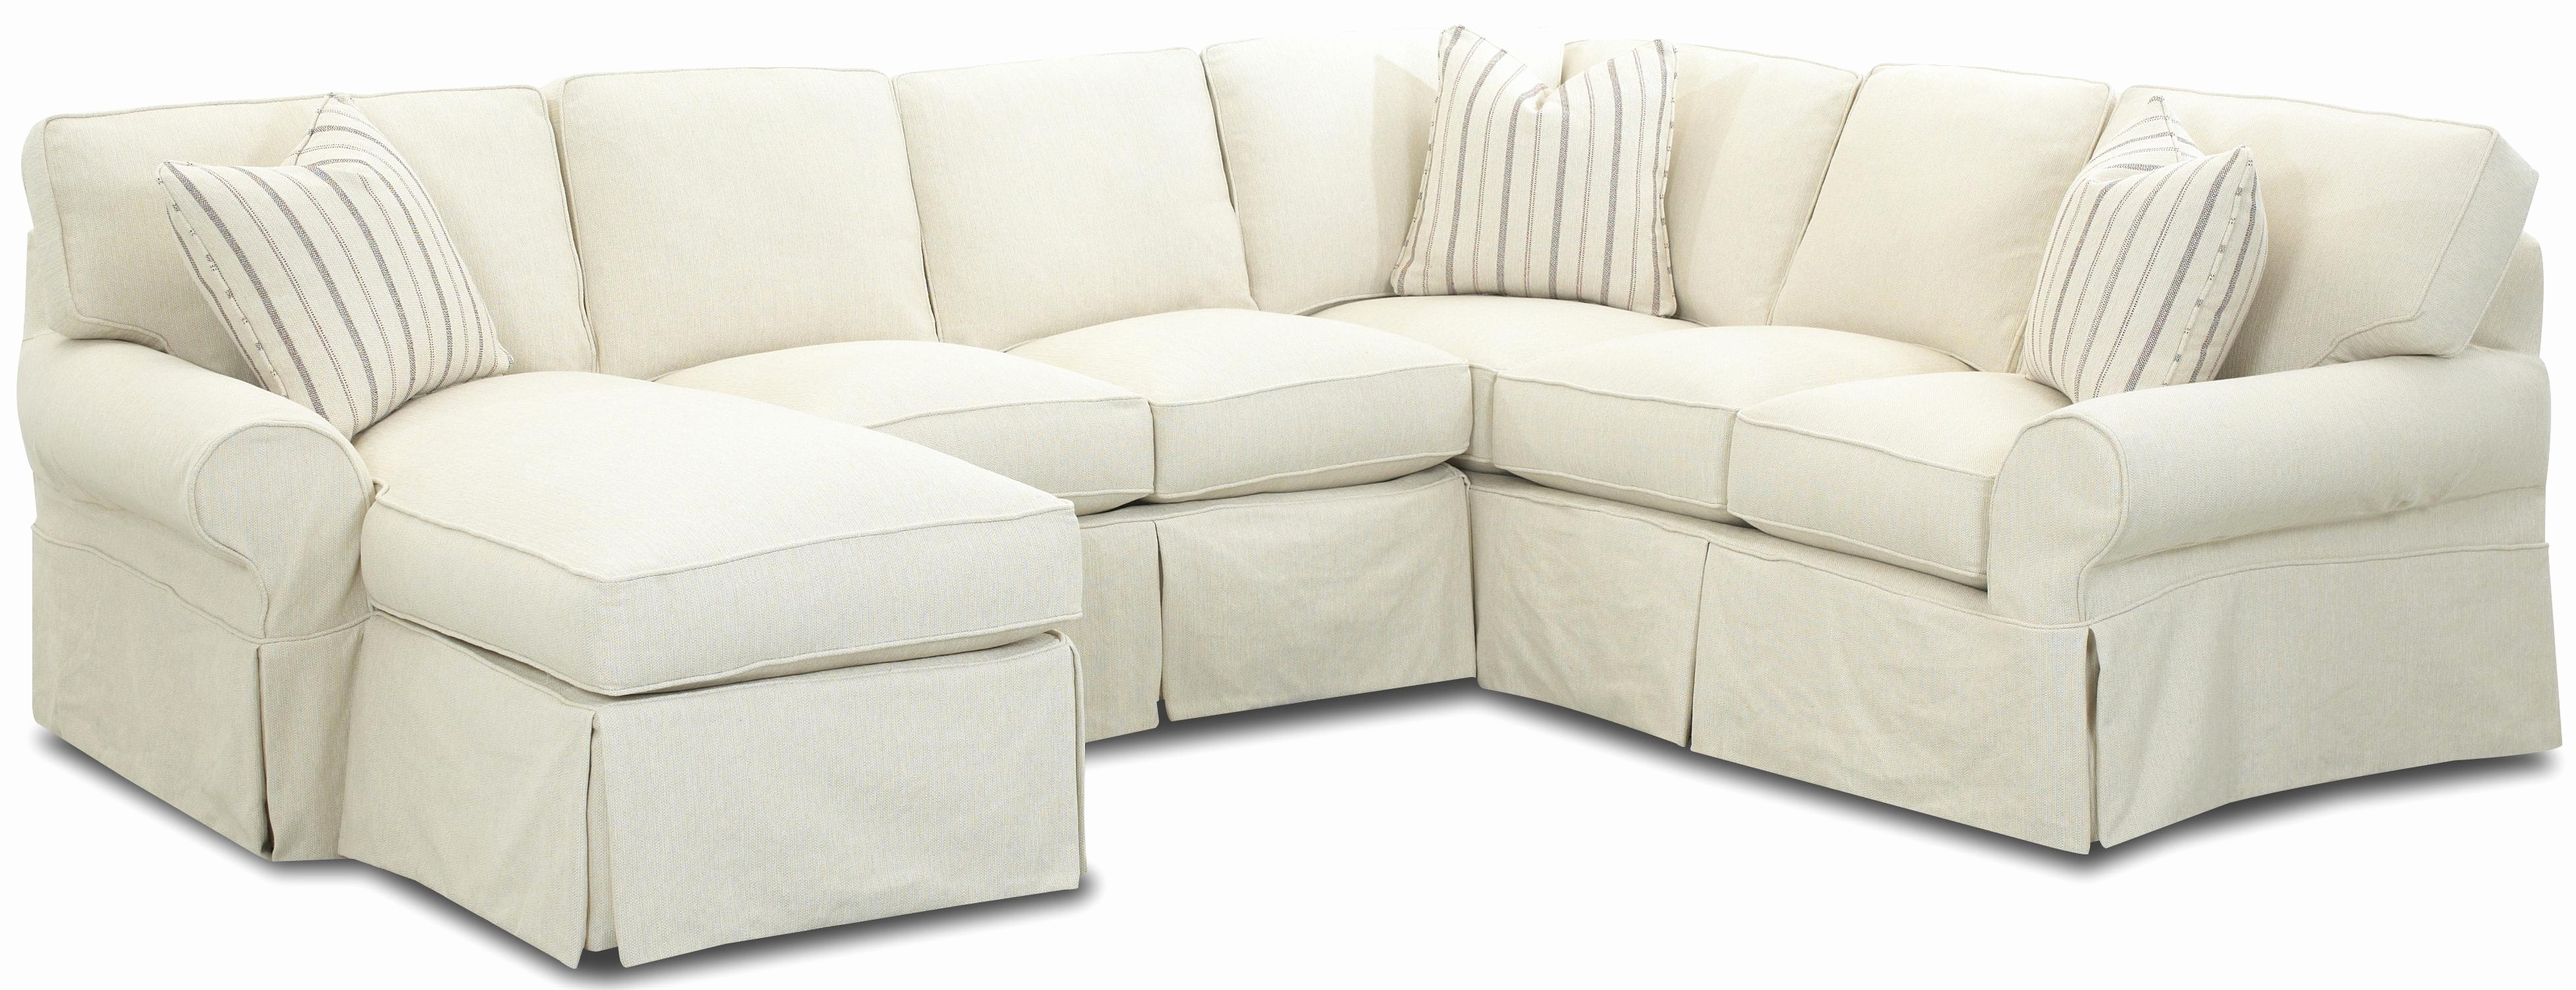 Overstock Sectional Sofas Inside Latest Unique 7 Piece Leather Sectional Sofa 2018 – Couches And Sofas Ideas (View 5 of 15)